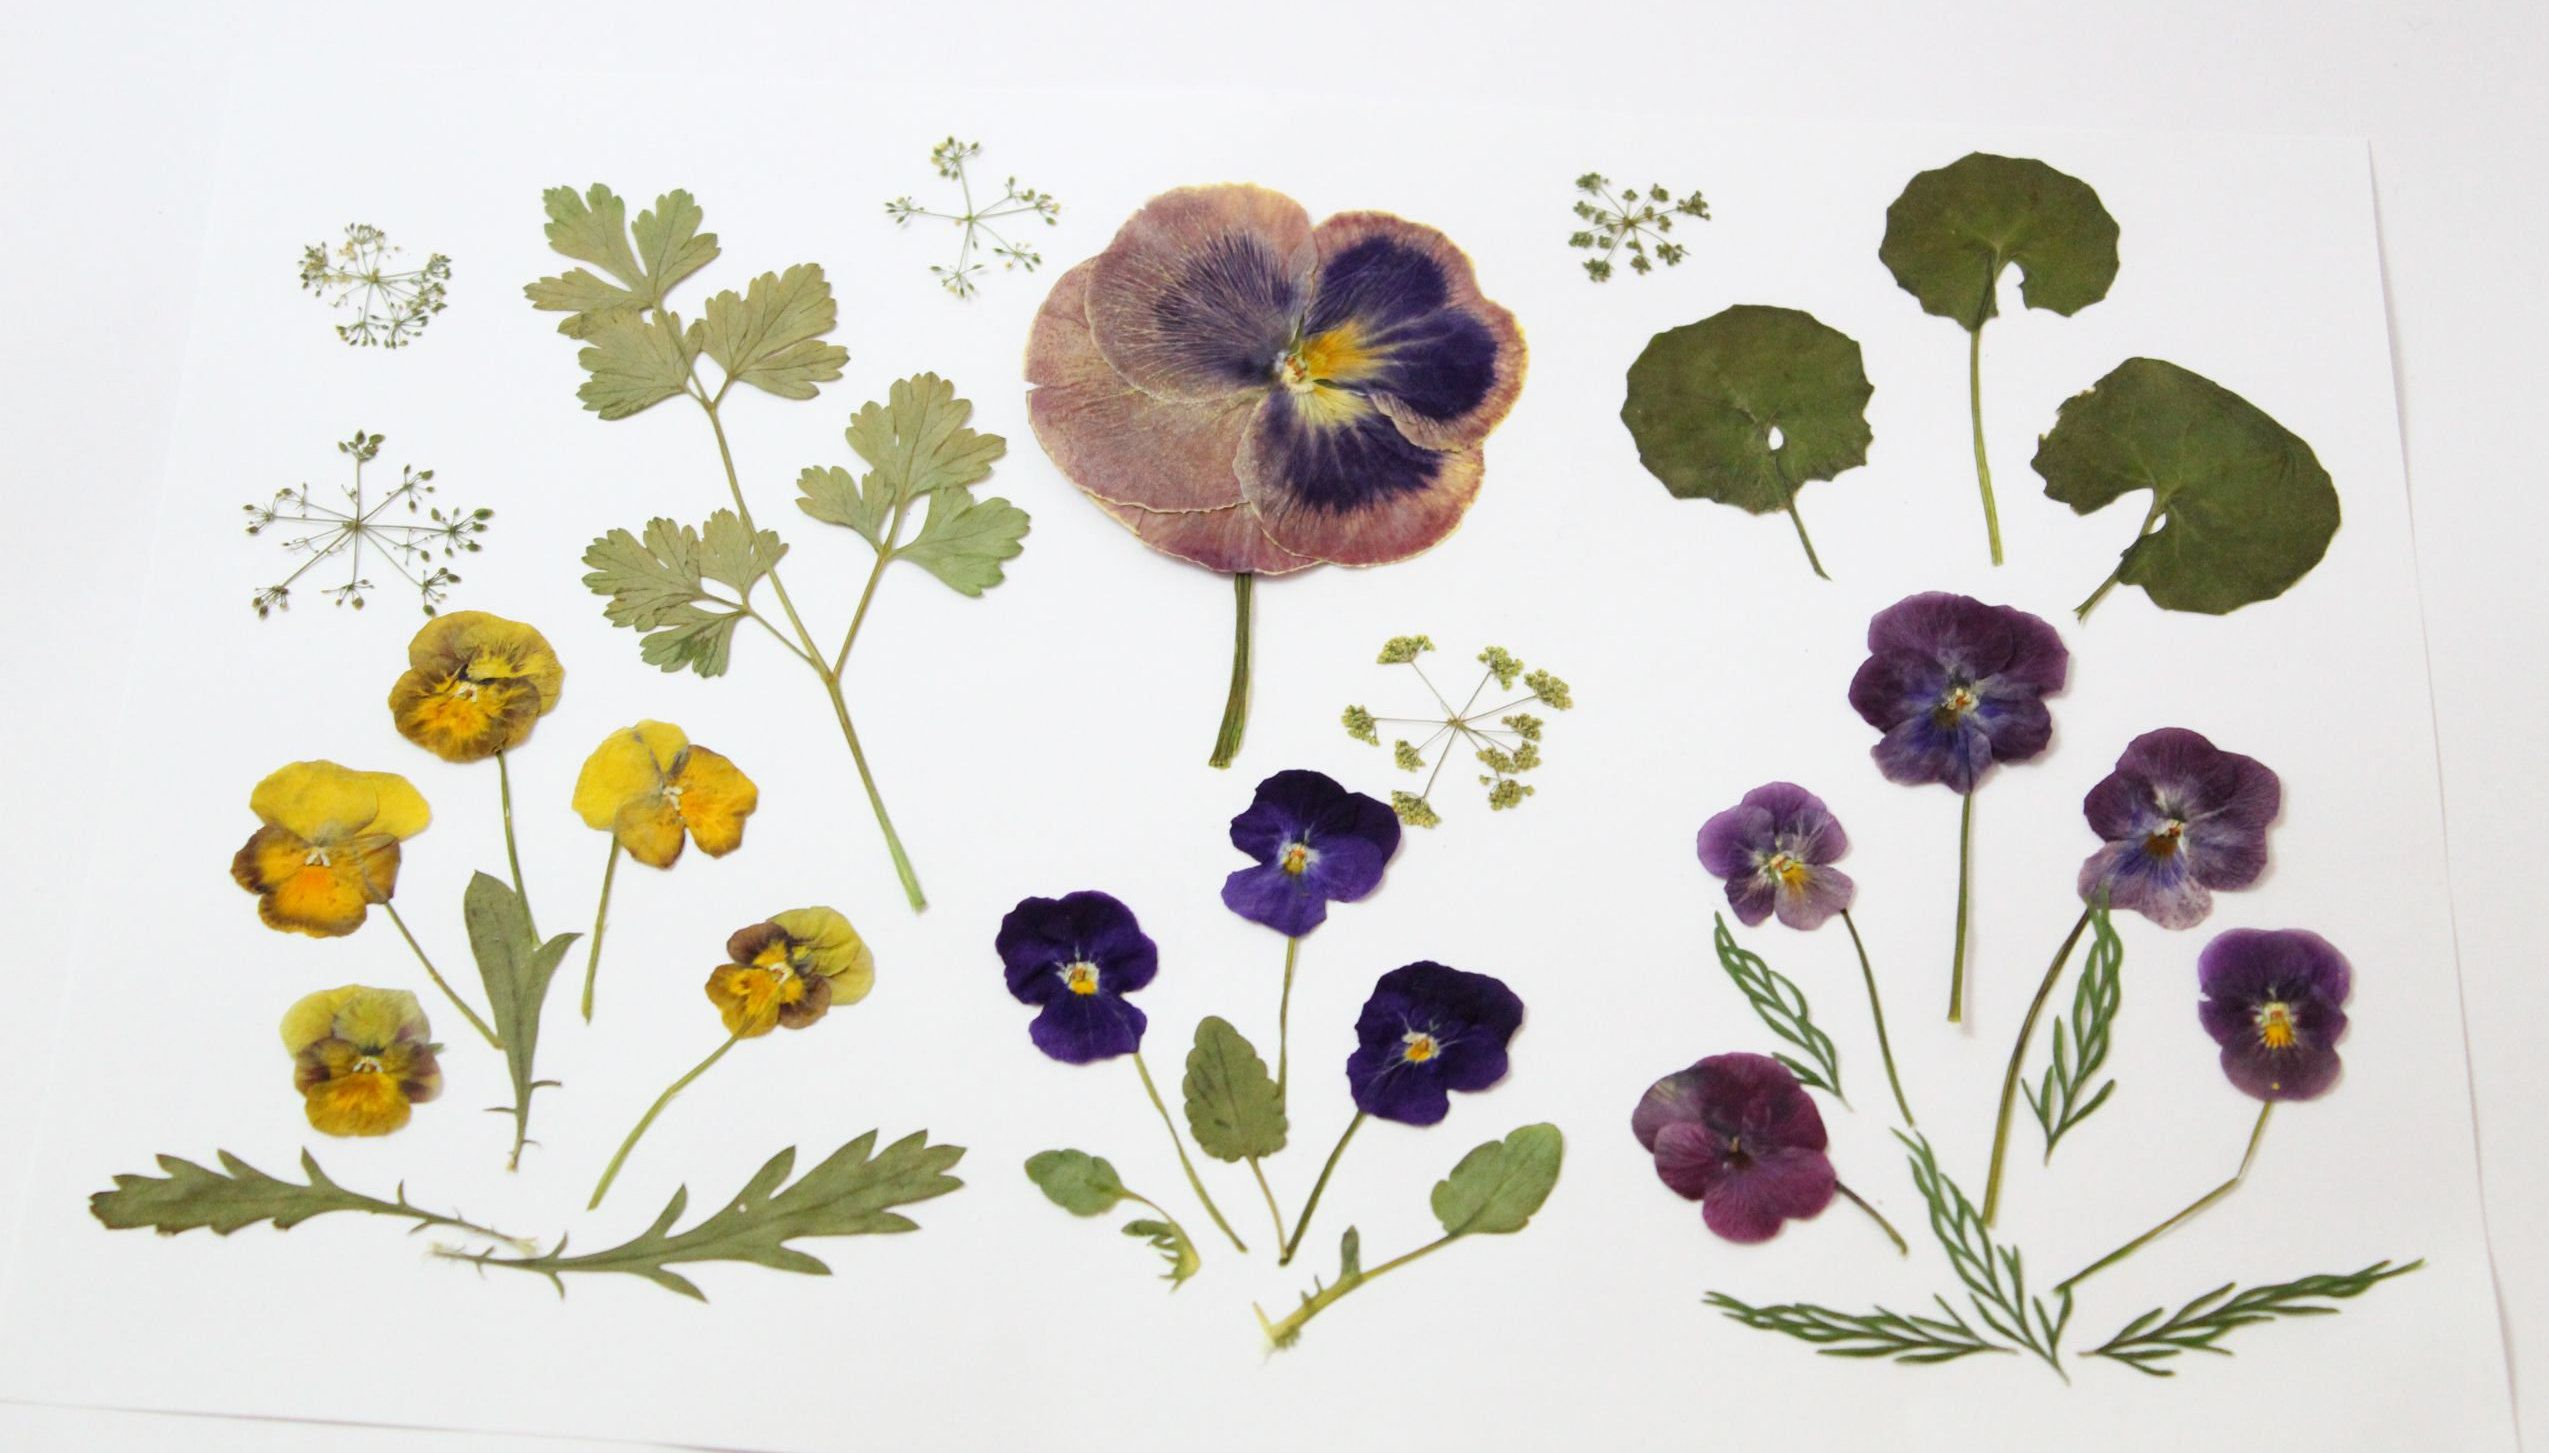 34 Pcs Mixed Dried Flowers And Pressed Leaves Pansy Viola Etsy In 2020 Flower Supplies Floral Supplies Pansies Flowers